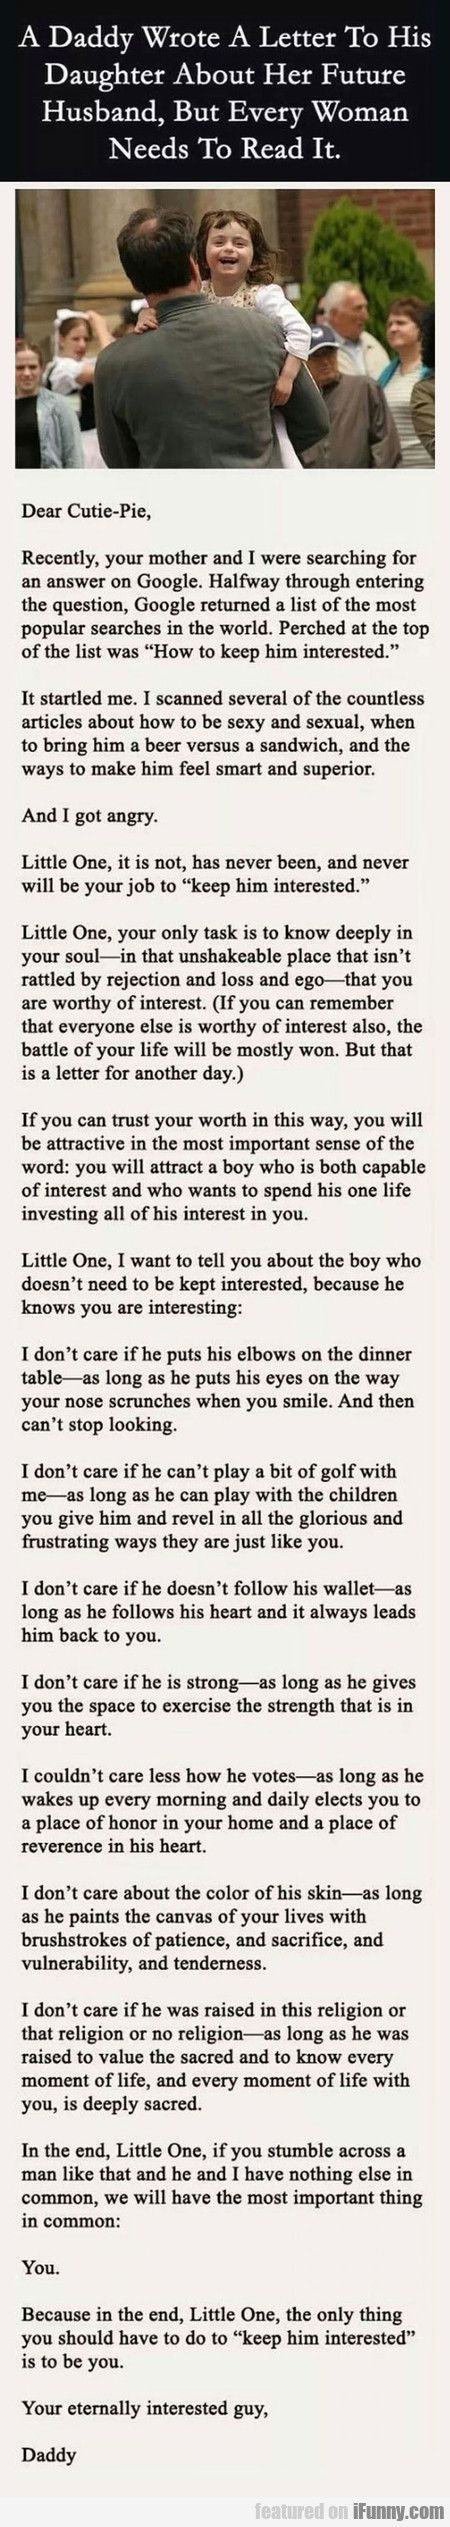 A Daddy Wrote A Letter To His Daughter About...